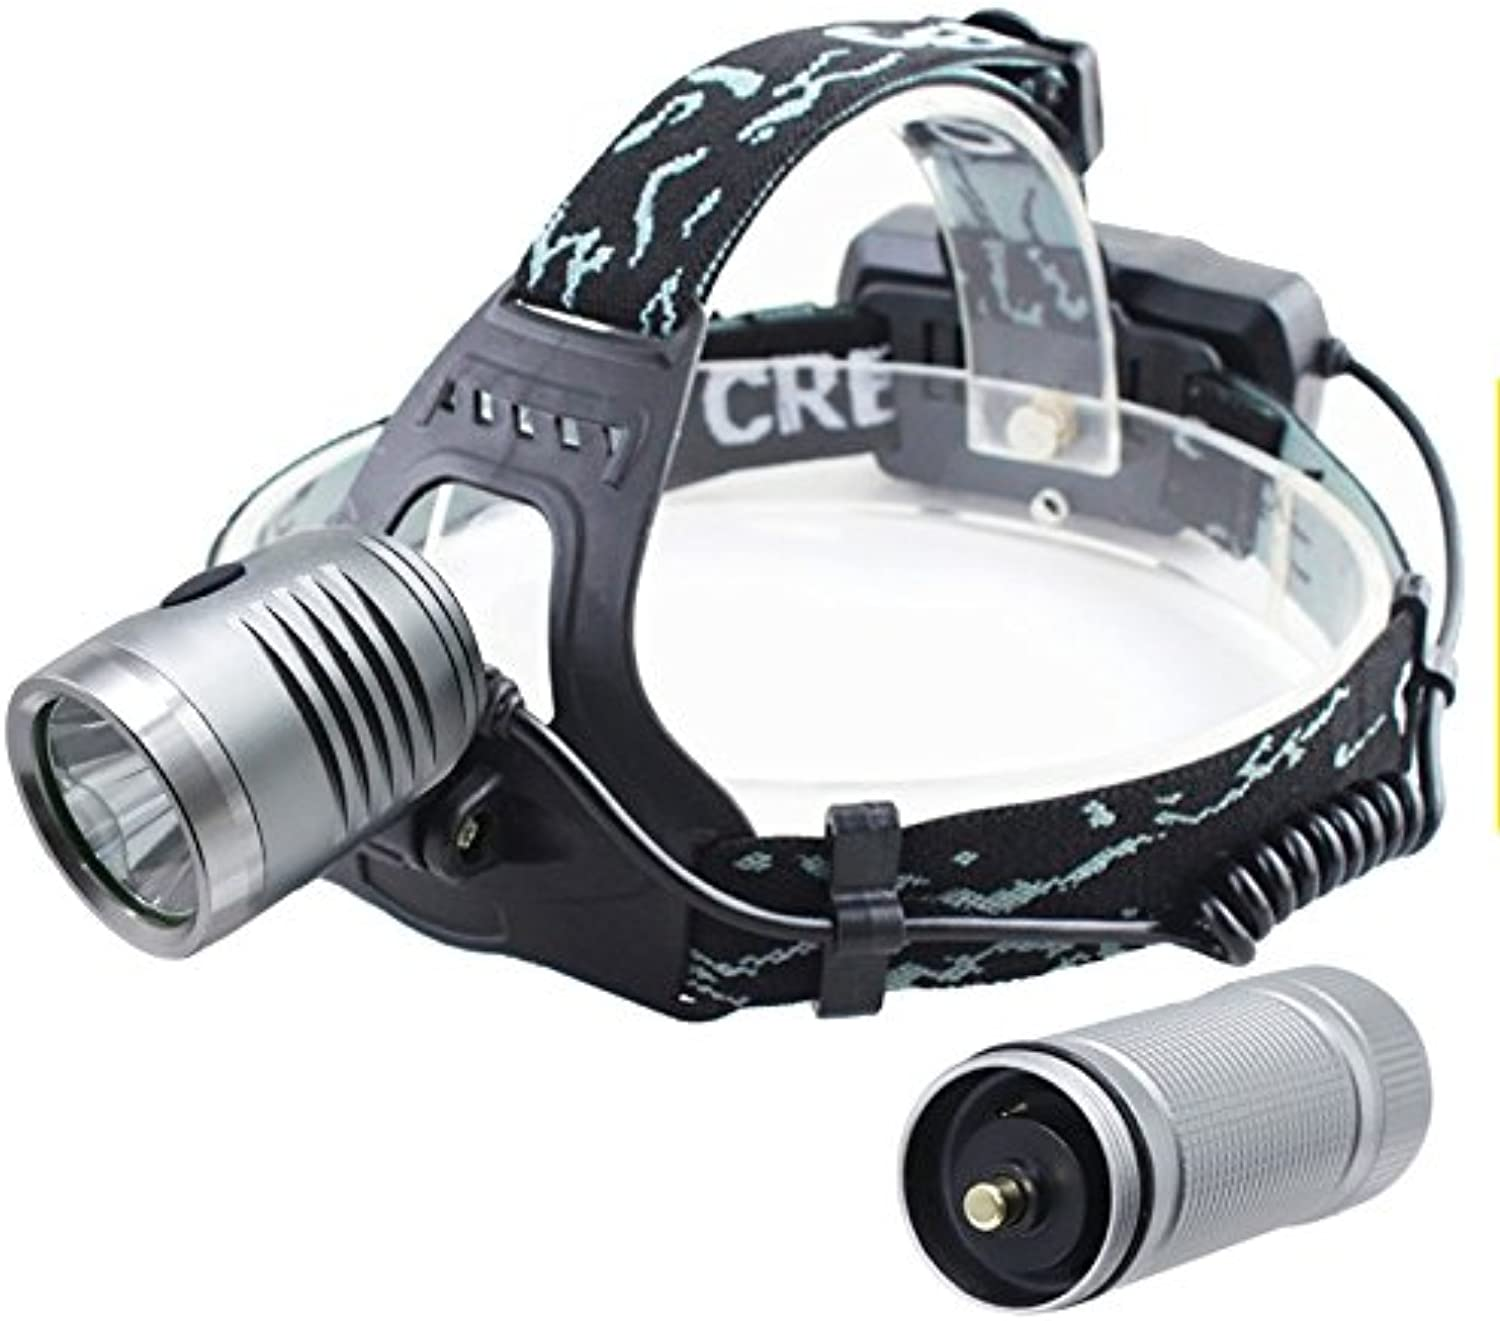 LL LED Headlamp 3Mode Waterproof Headlight Camping Hunting Head Torch by 18650 Battery Flashlight led Light Night